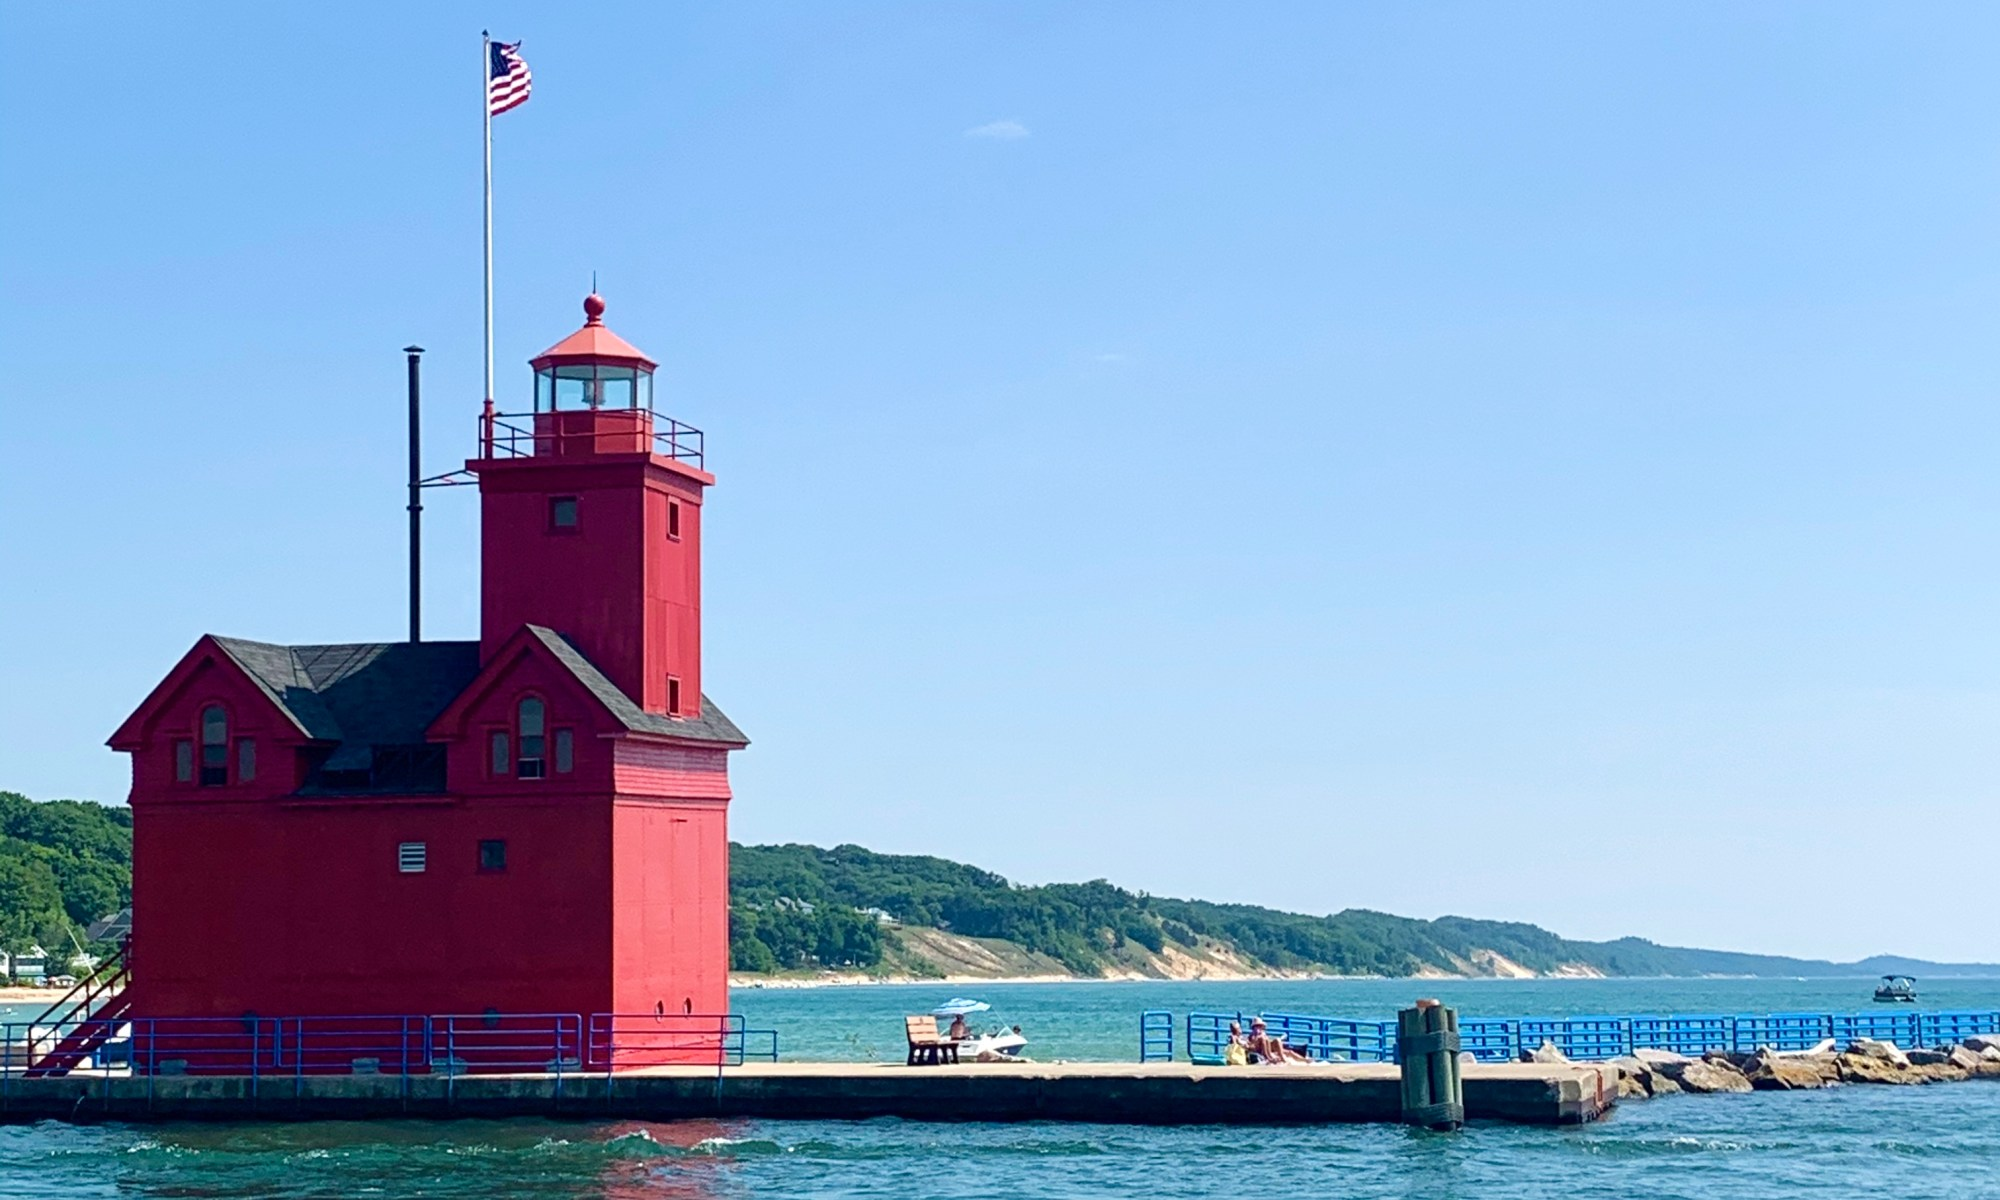 A red lighthouse